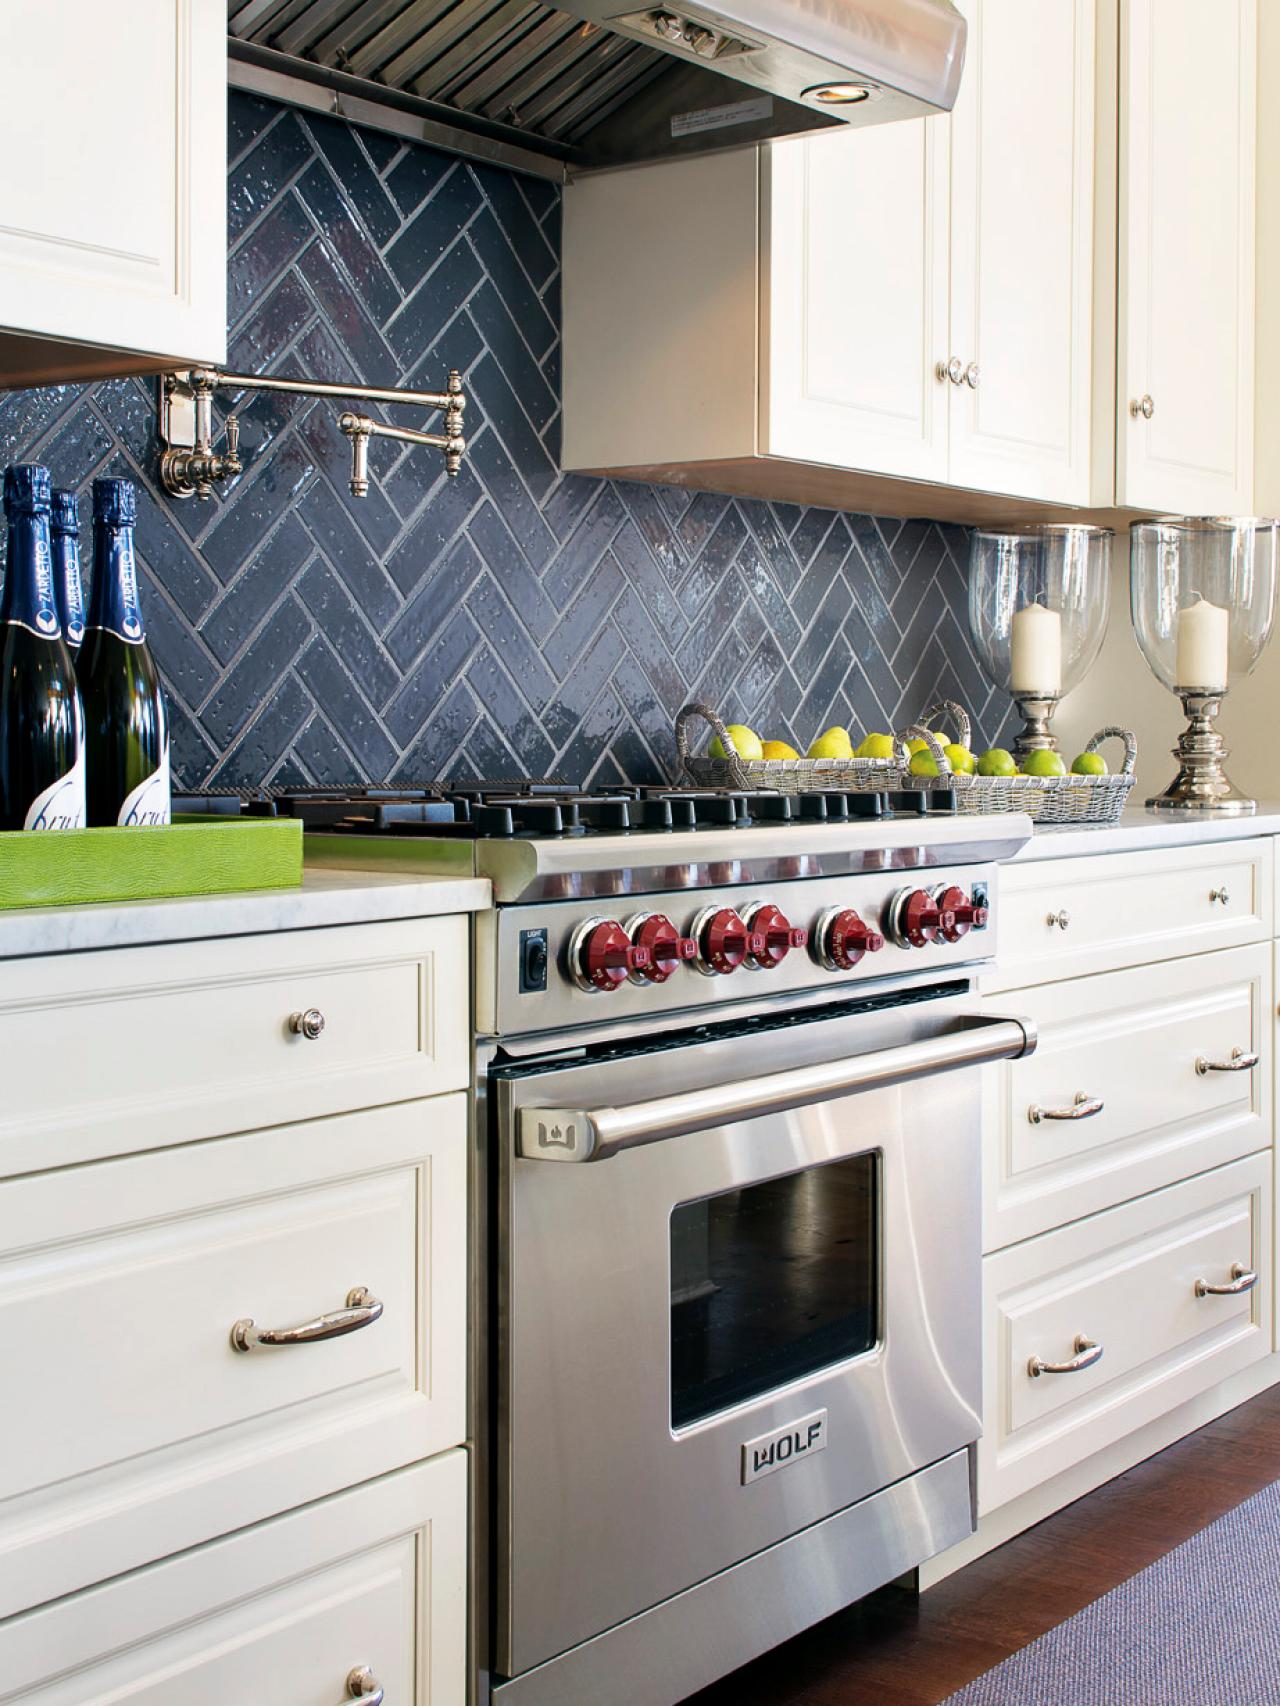 painting kitchen backsplashes: pictures & ideas from hgtv | hgtv